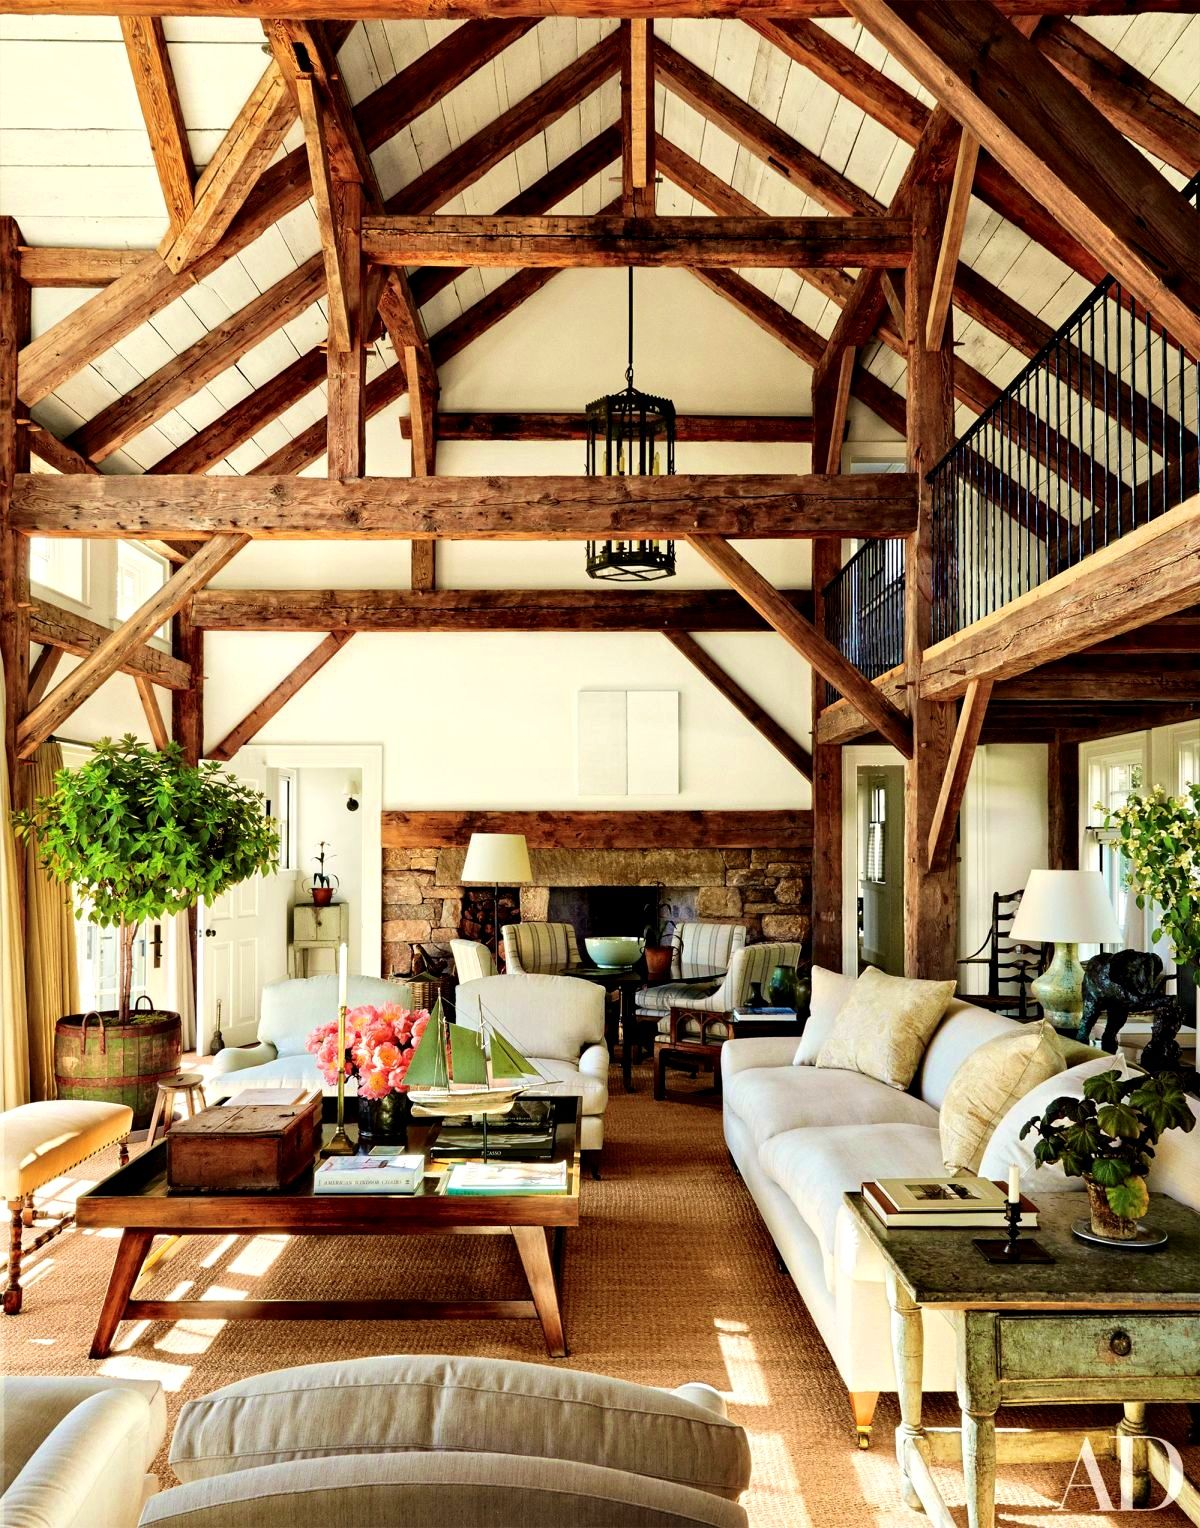 Apartments : Stunning Chic Design Trend Exposed Beams Structural Wood  Architecture In Basement Steel Feng Shui Pictures Gallery